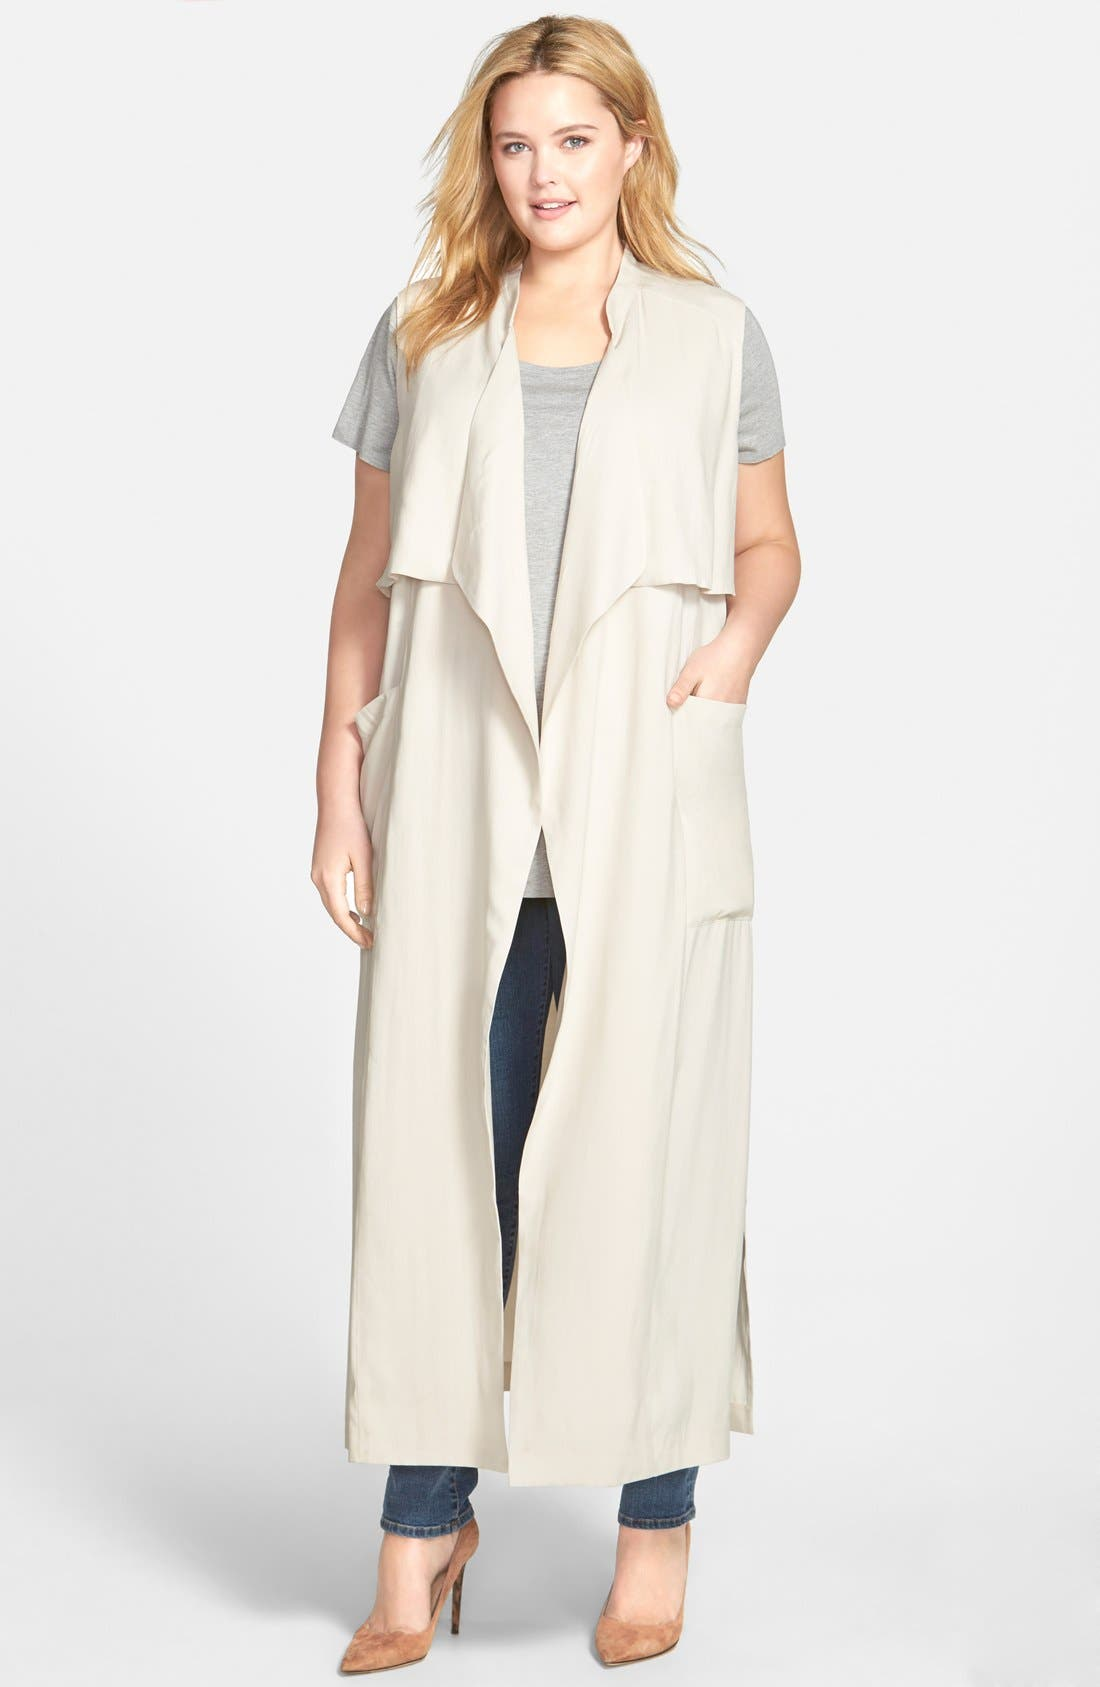 SEJOUR, Open Front Sleeveless Trench Coat, Main thumbnail 1, color, 250